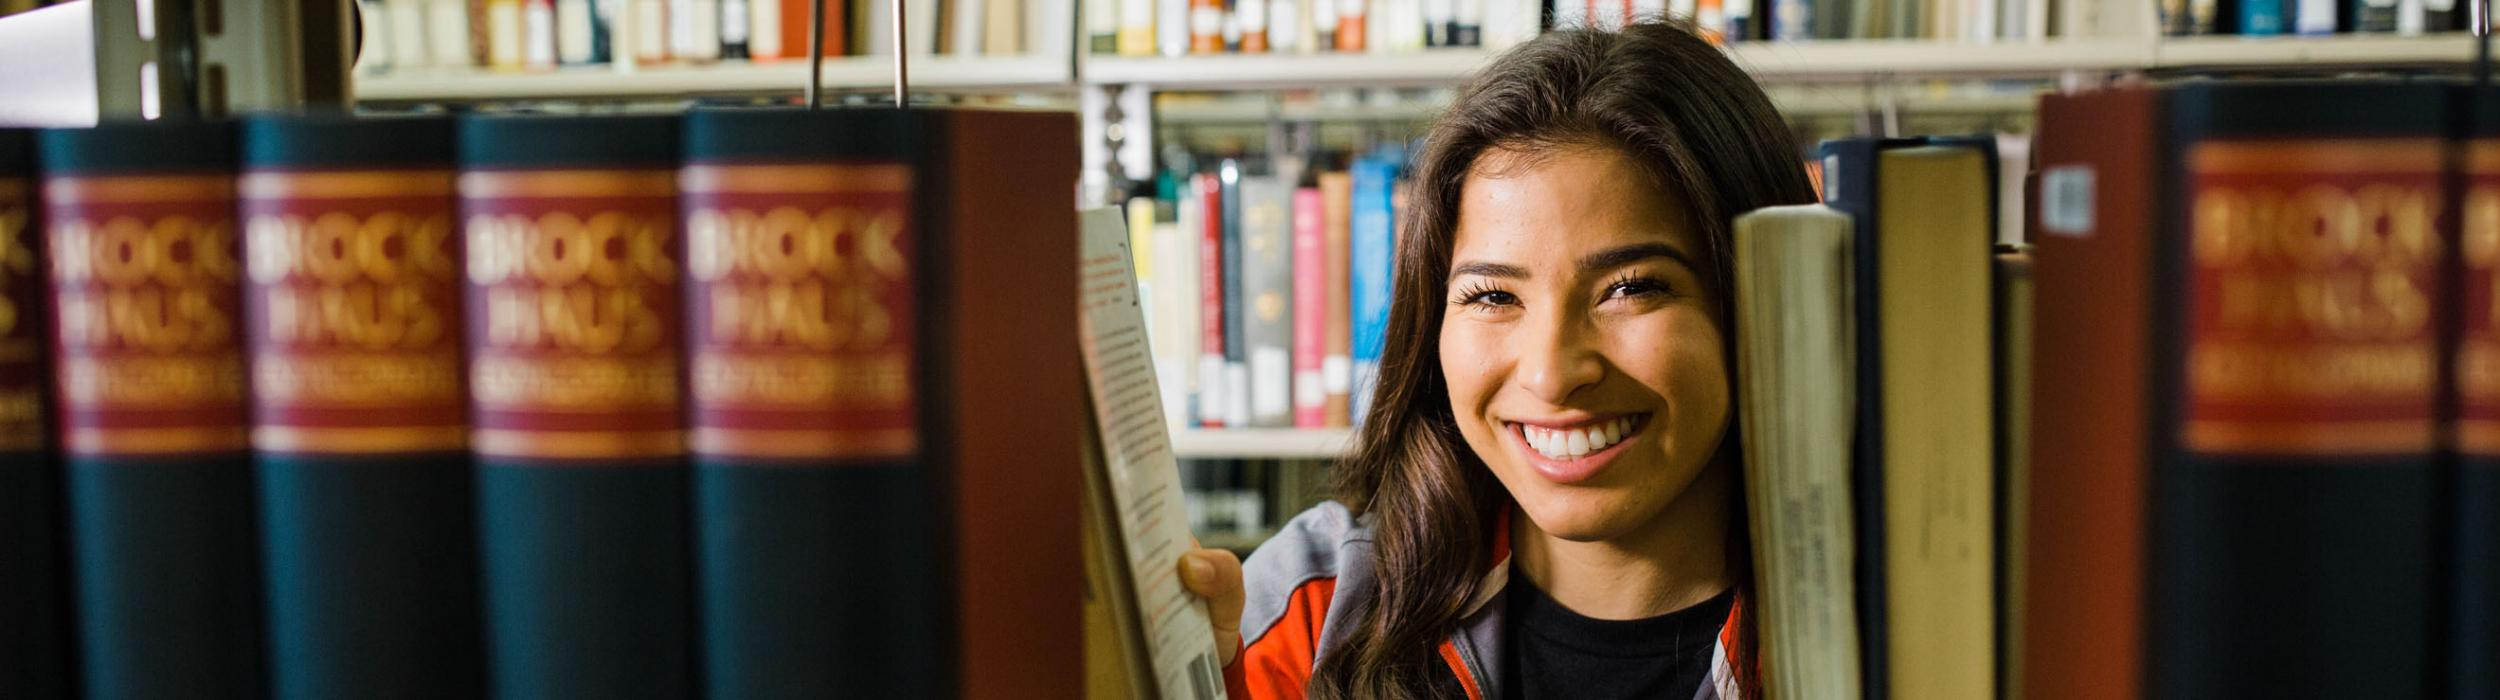 Student Behind bookshelves